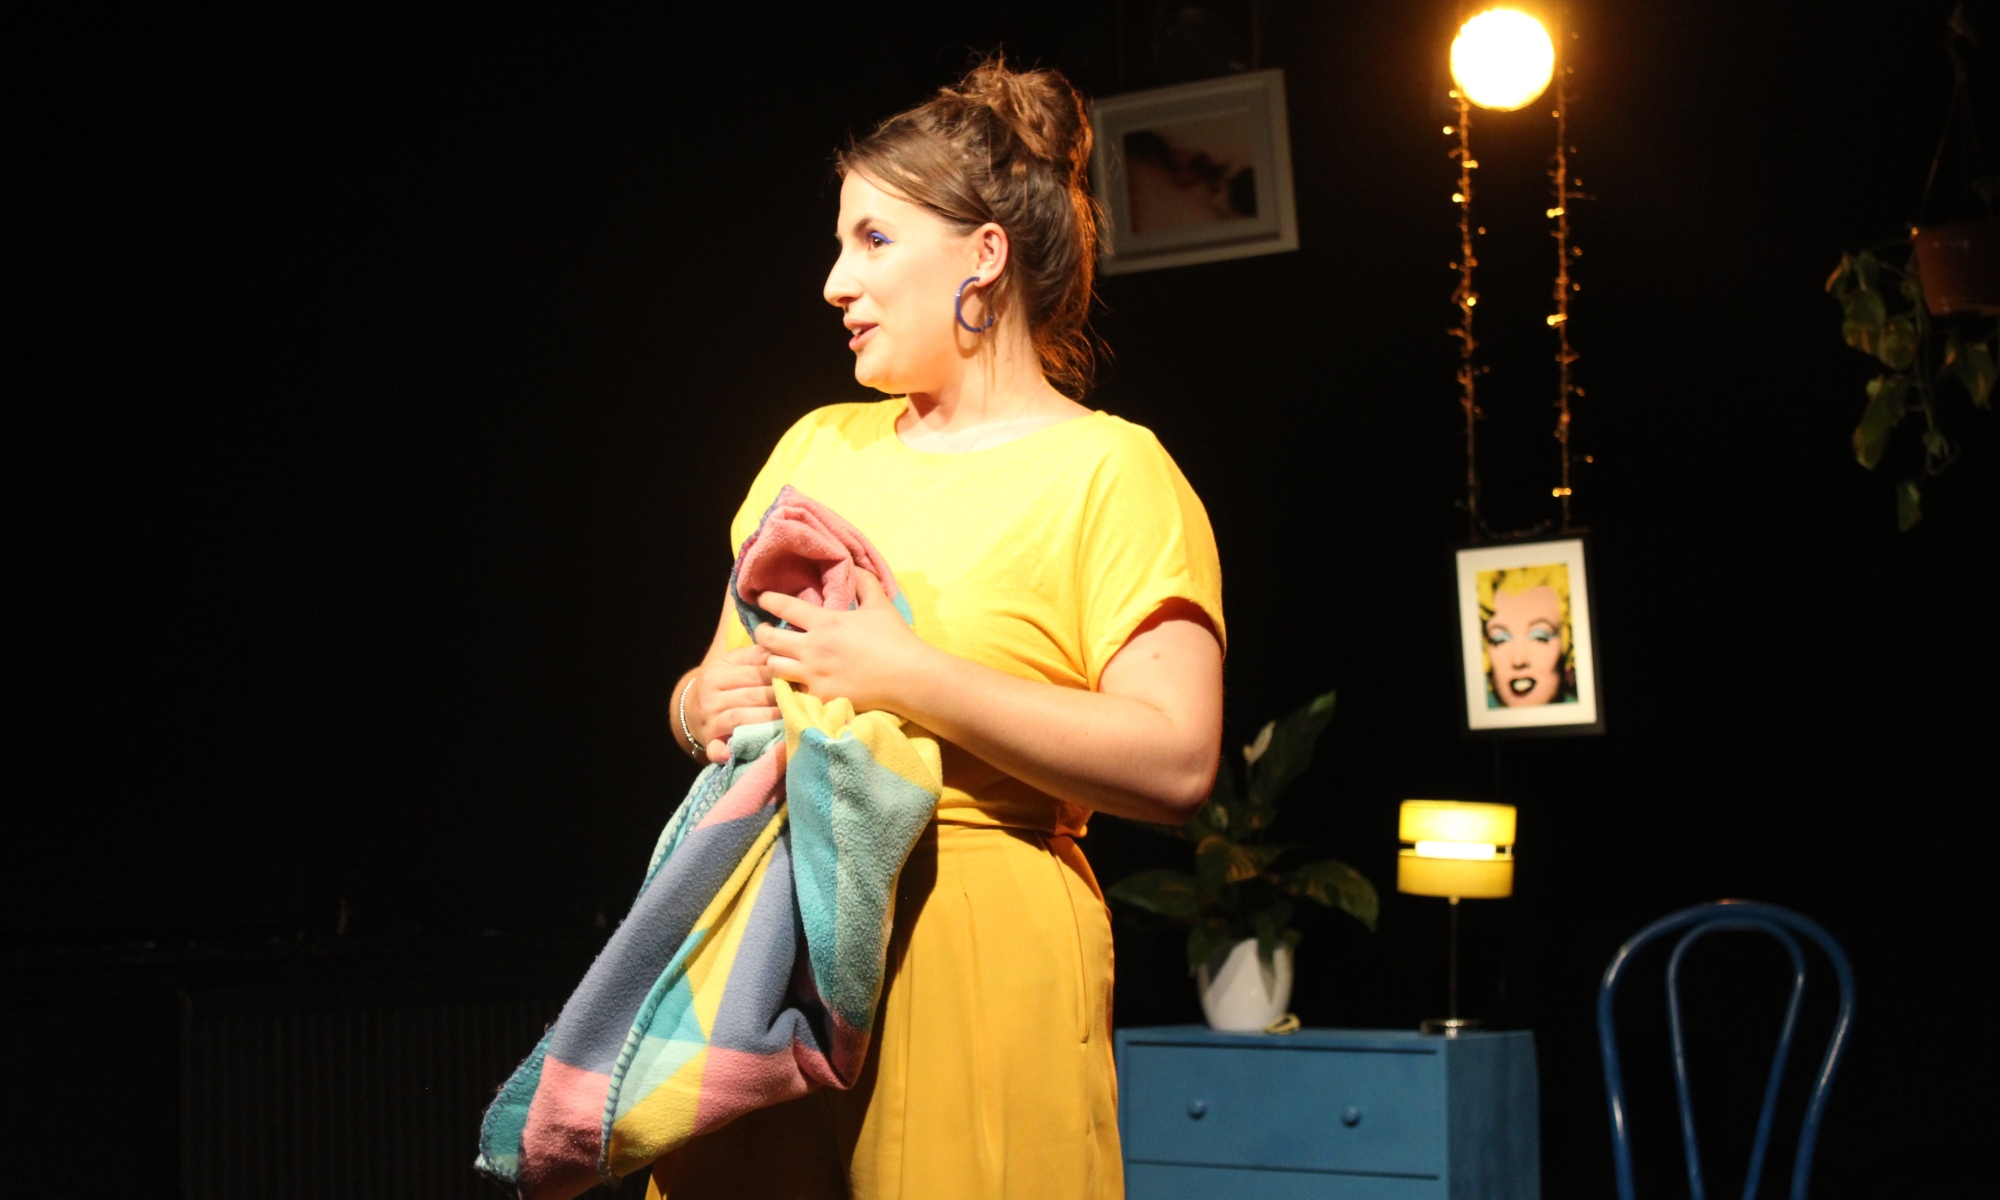 A woman in a yellow dress holds a multi-coloured scarf.